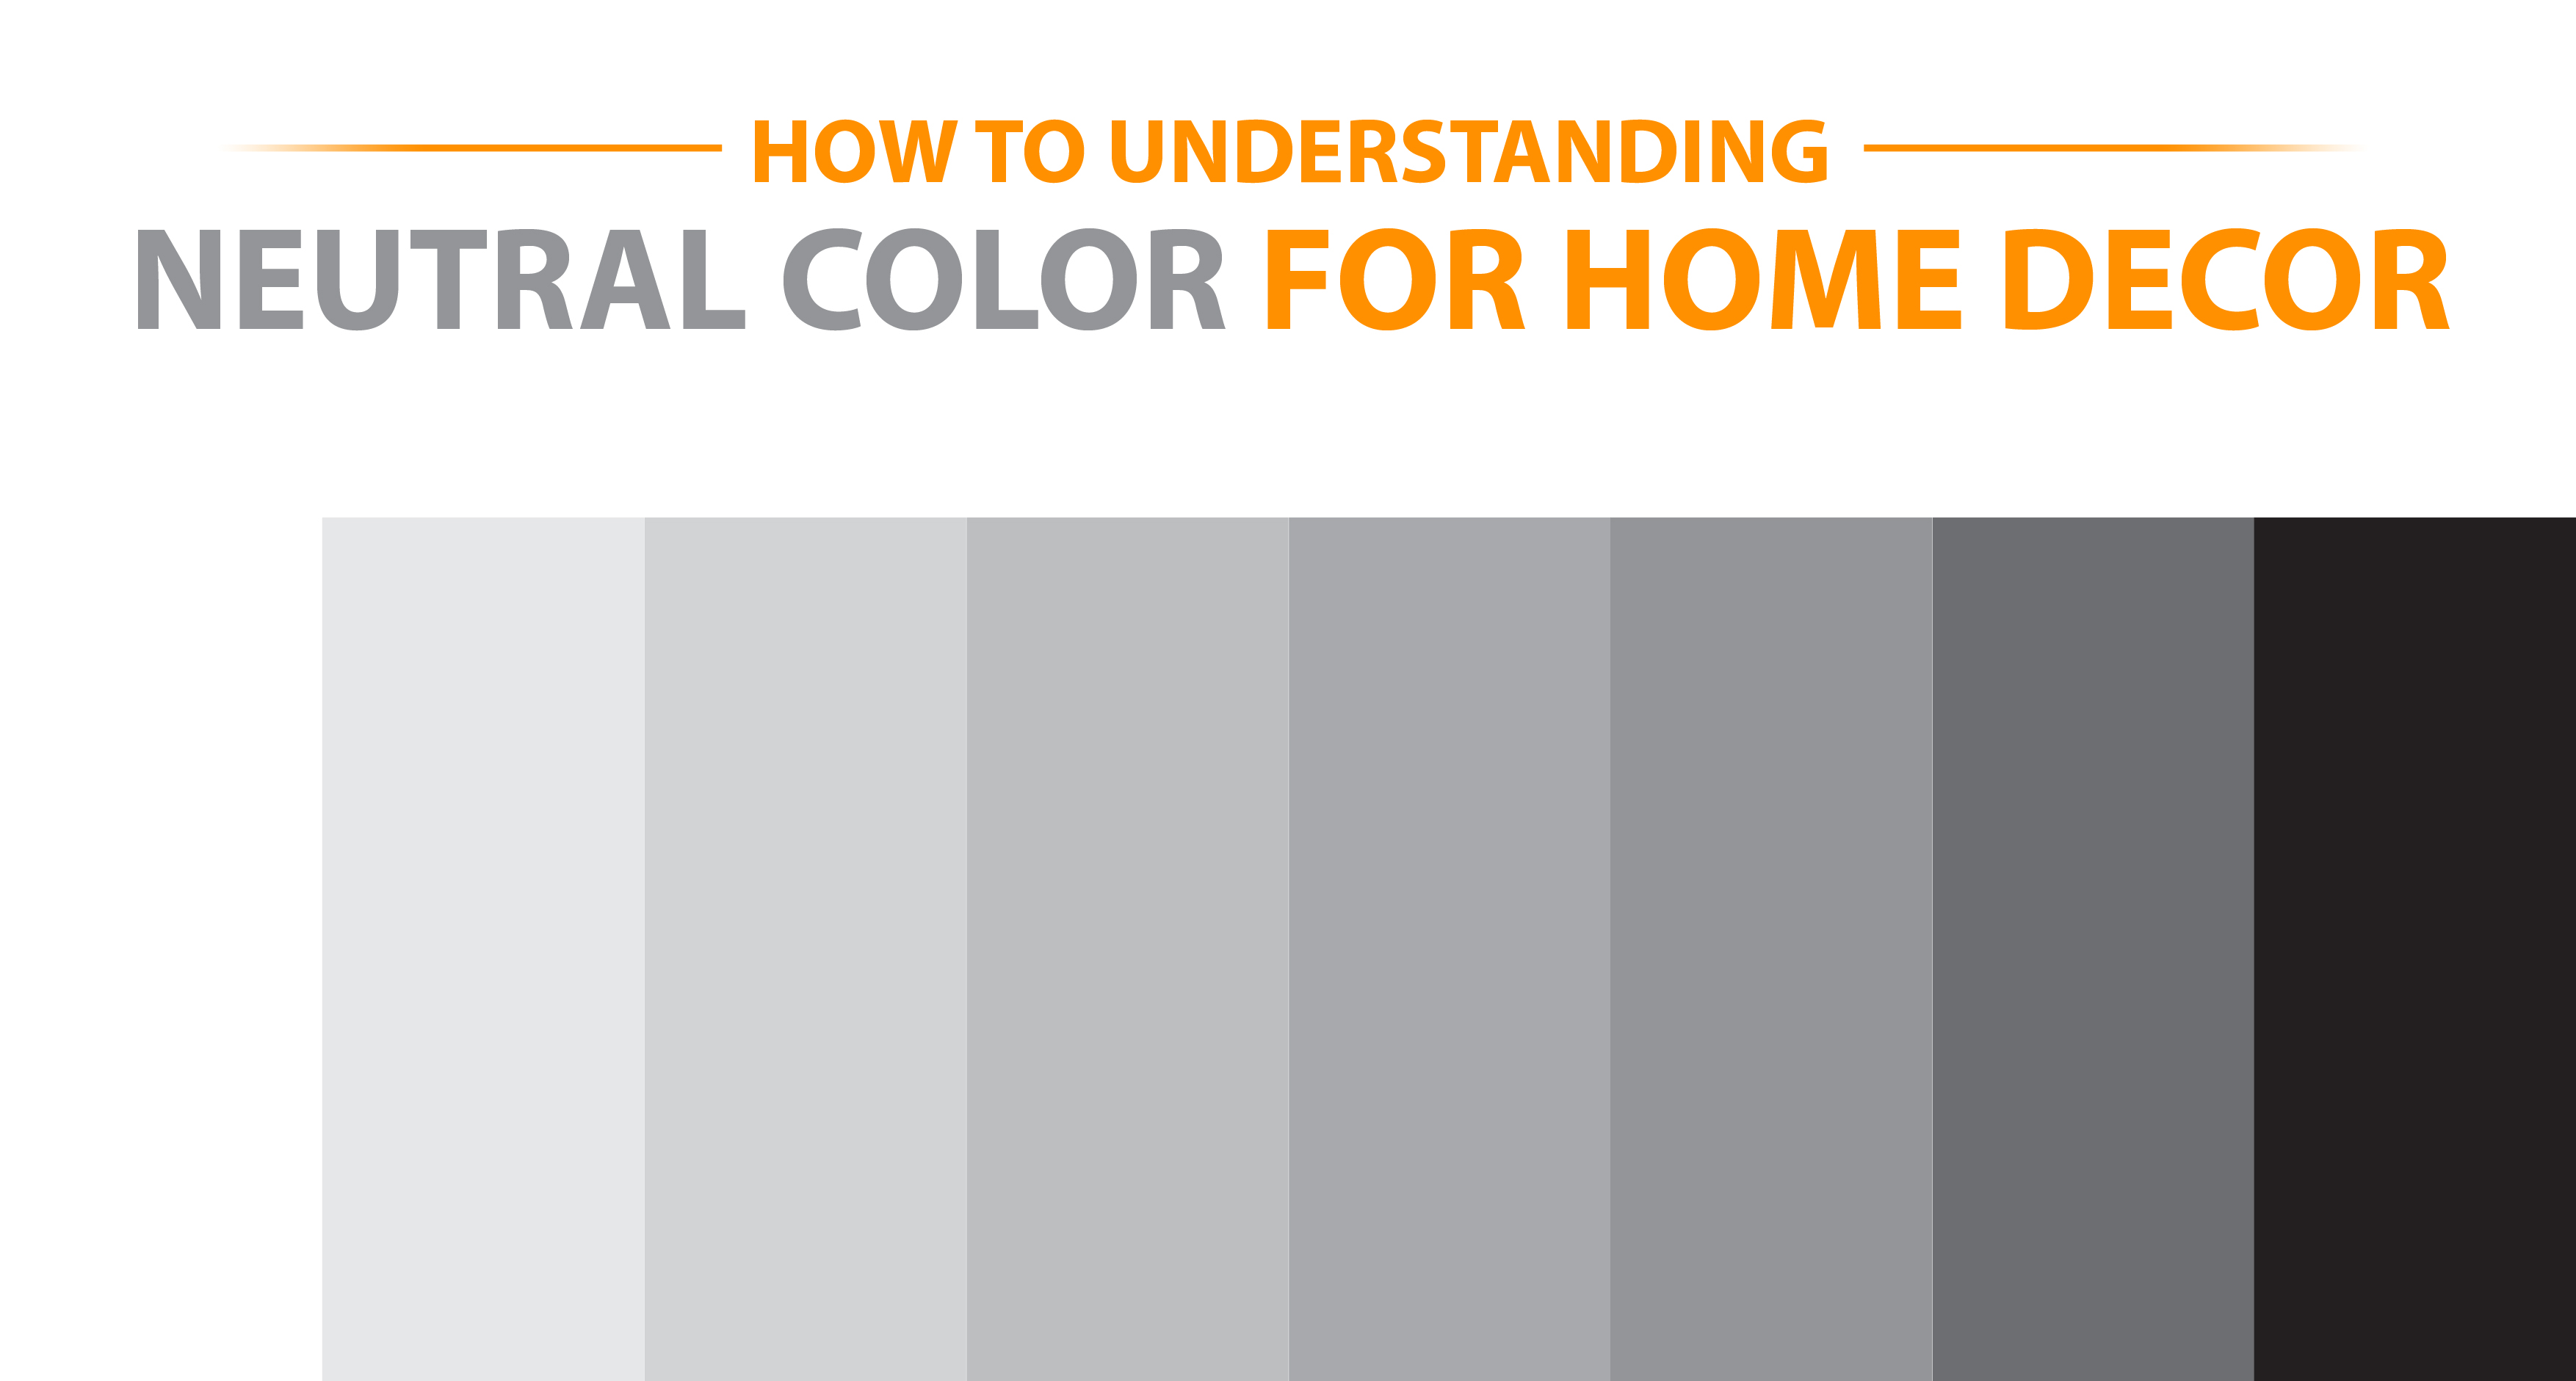 How to understanding neutral color scheme for home decor in house paint  colors by best and